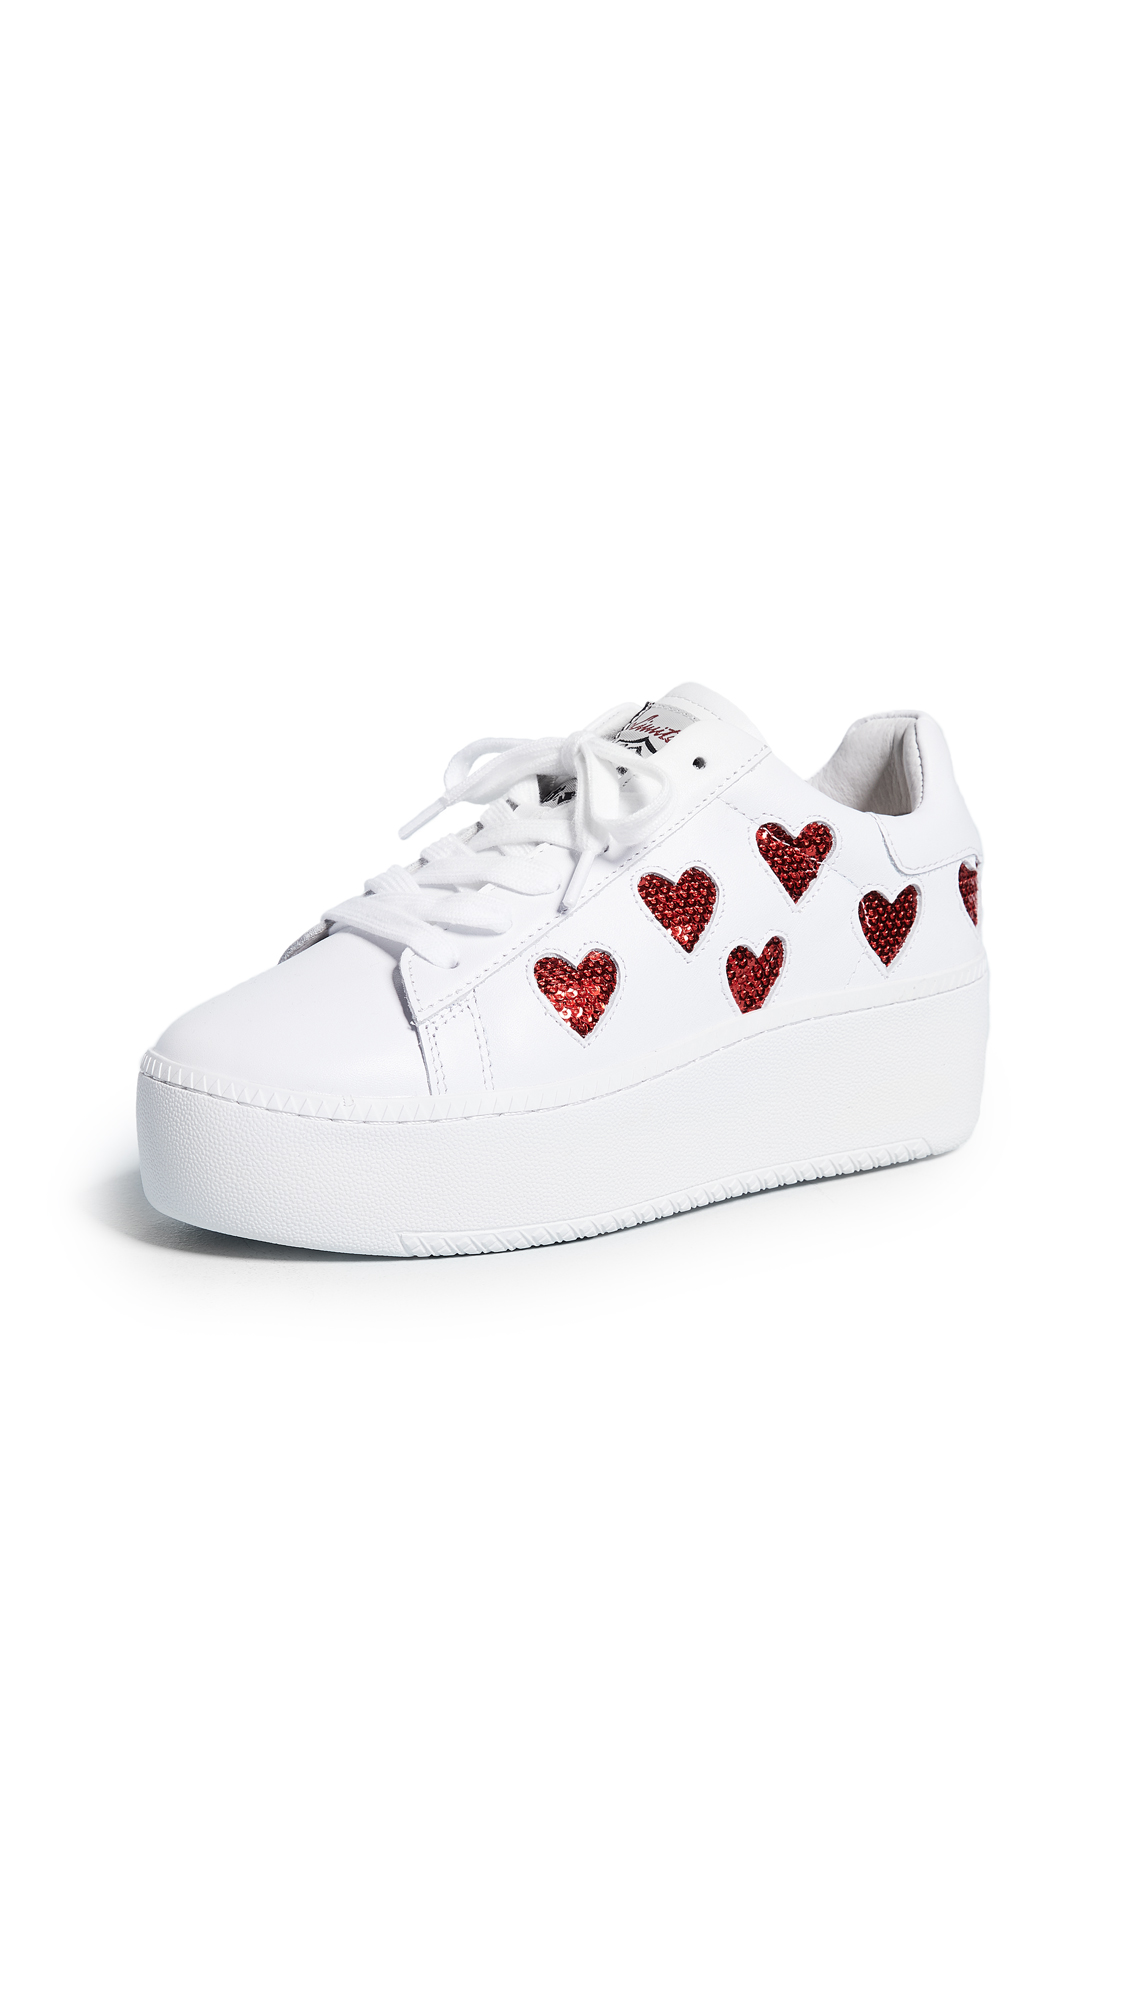 Ash Cute Platform Sneakers - White/Red